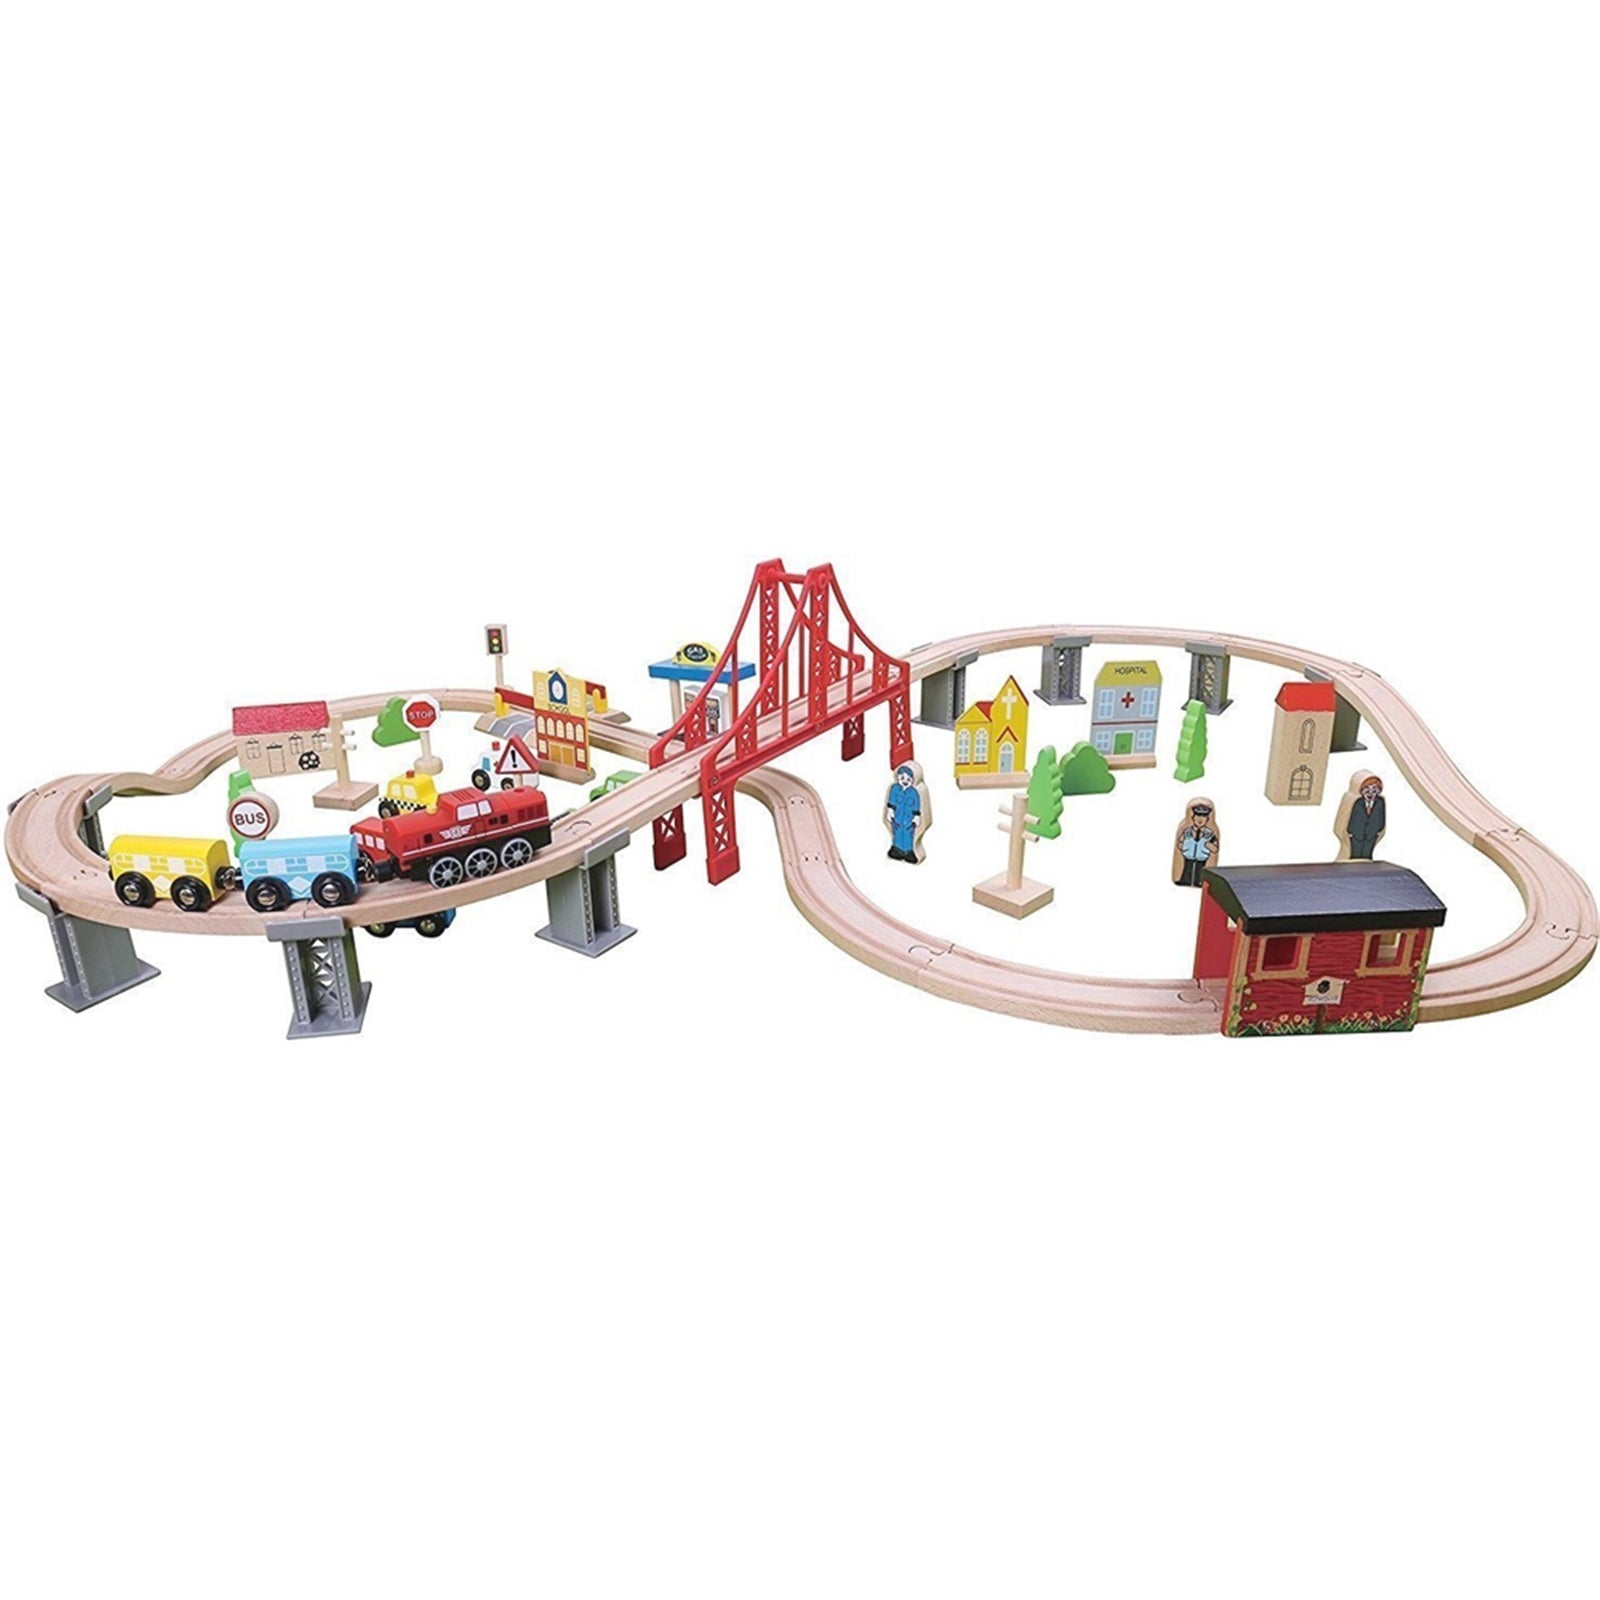 70pcs Wooden Train Set Learning Toy Kids Children Fun Road Crossing Track Railway Play Multicolor YF